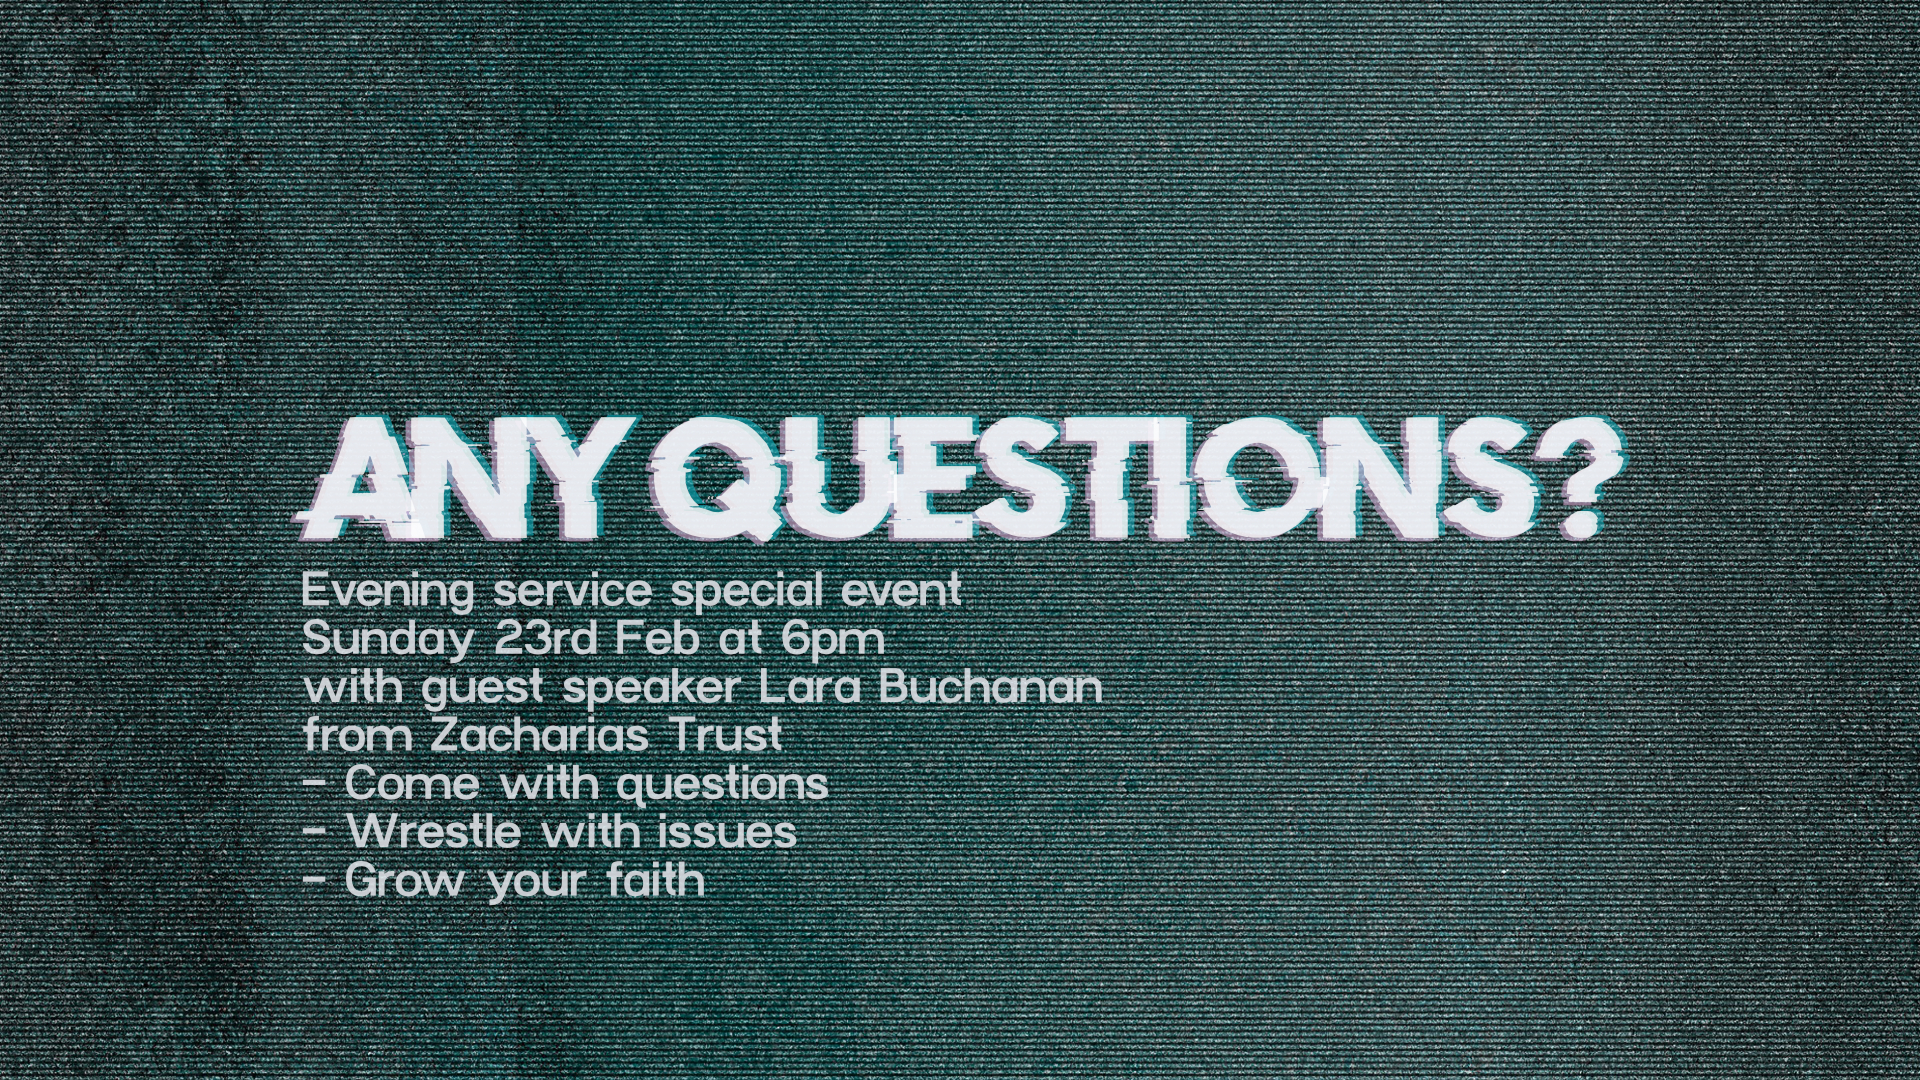 Any Questions? Evening Service special event on Sunday 23rd February at 6pm with guest speaker Lara Buchanan from Zacharias Trust. Come with Questions. Wrestle with issues. Grow your faith.